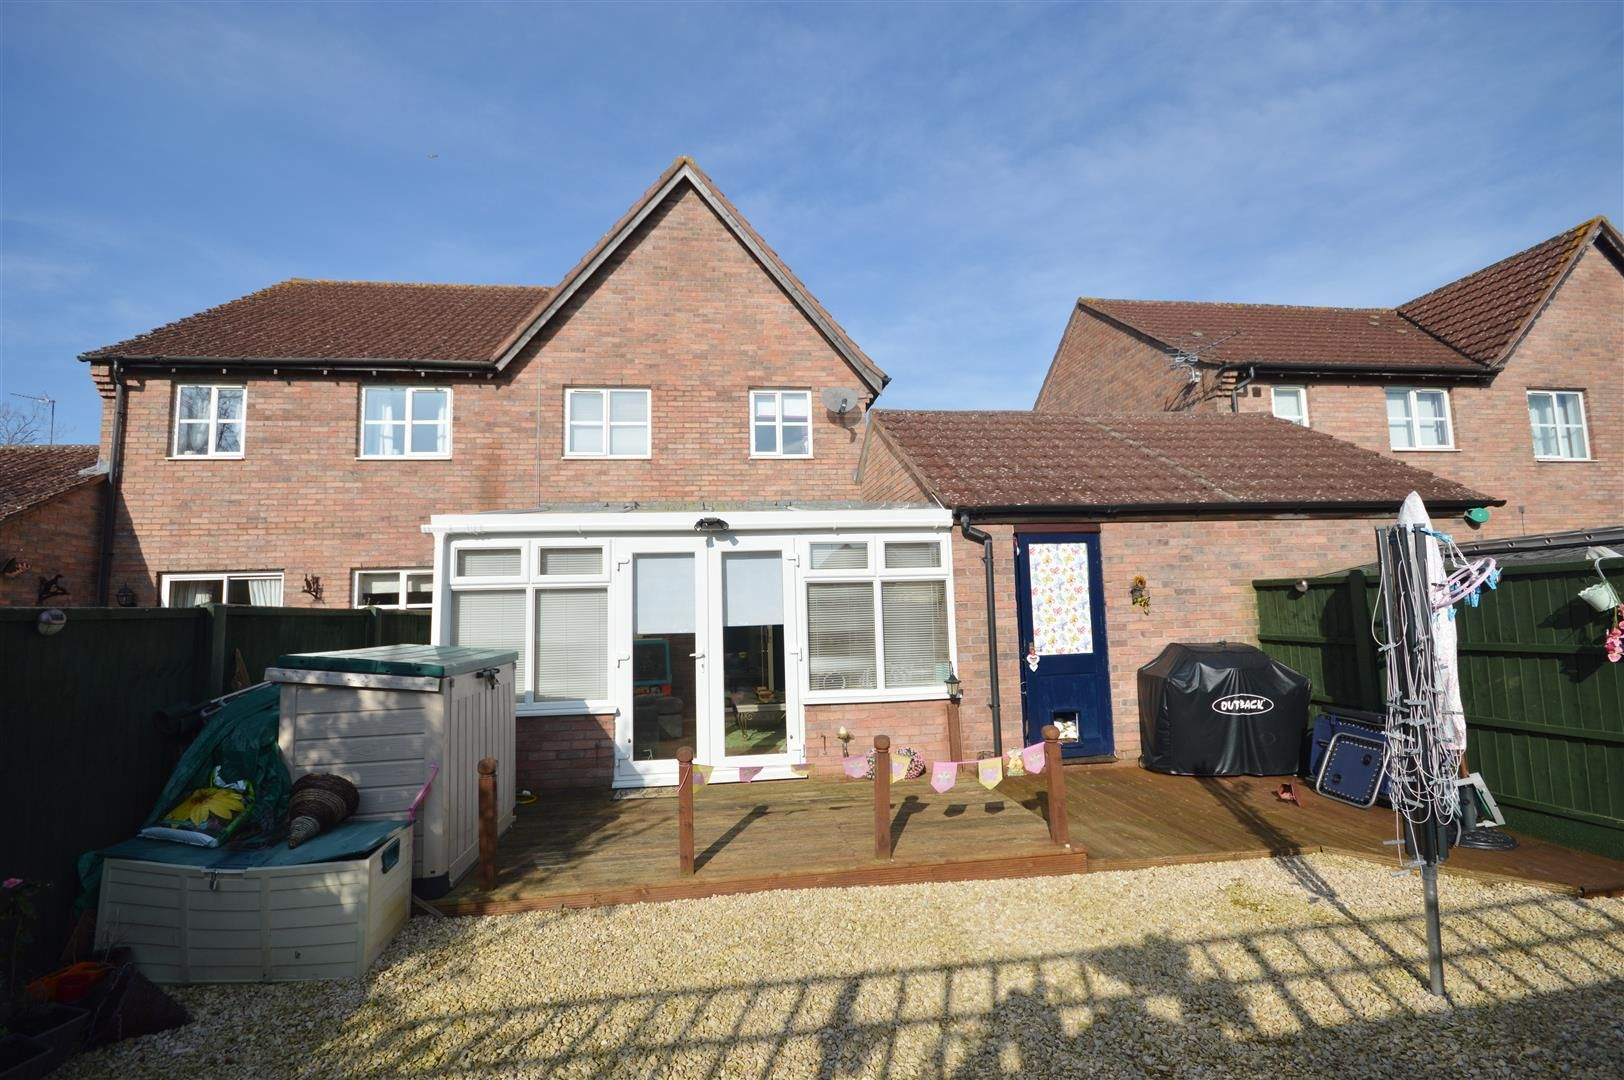 3 bed semi-detached for sale in Leominster  - Property Image 16